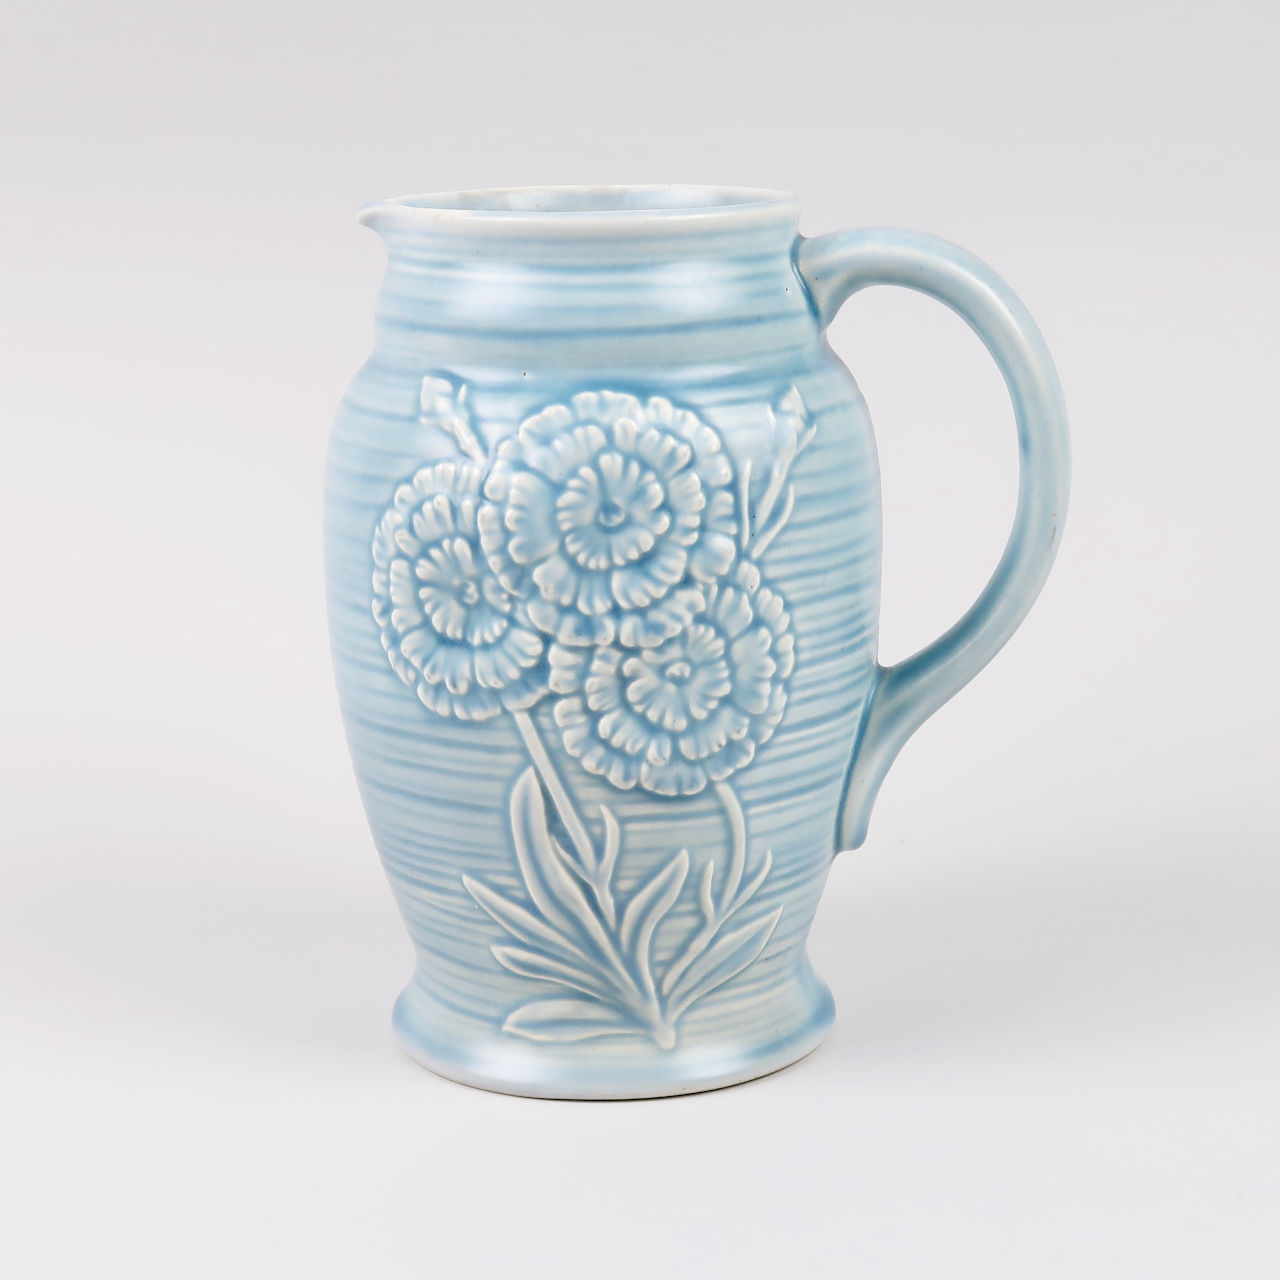 Burlington Ware Jug